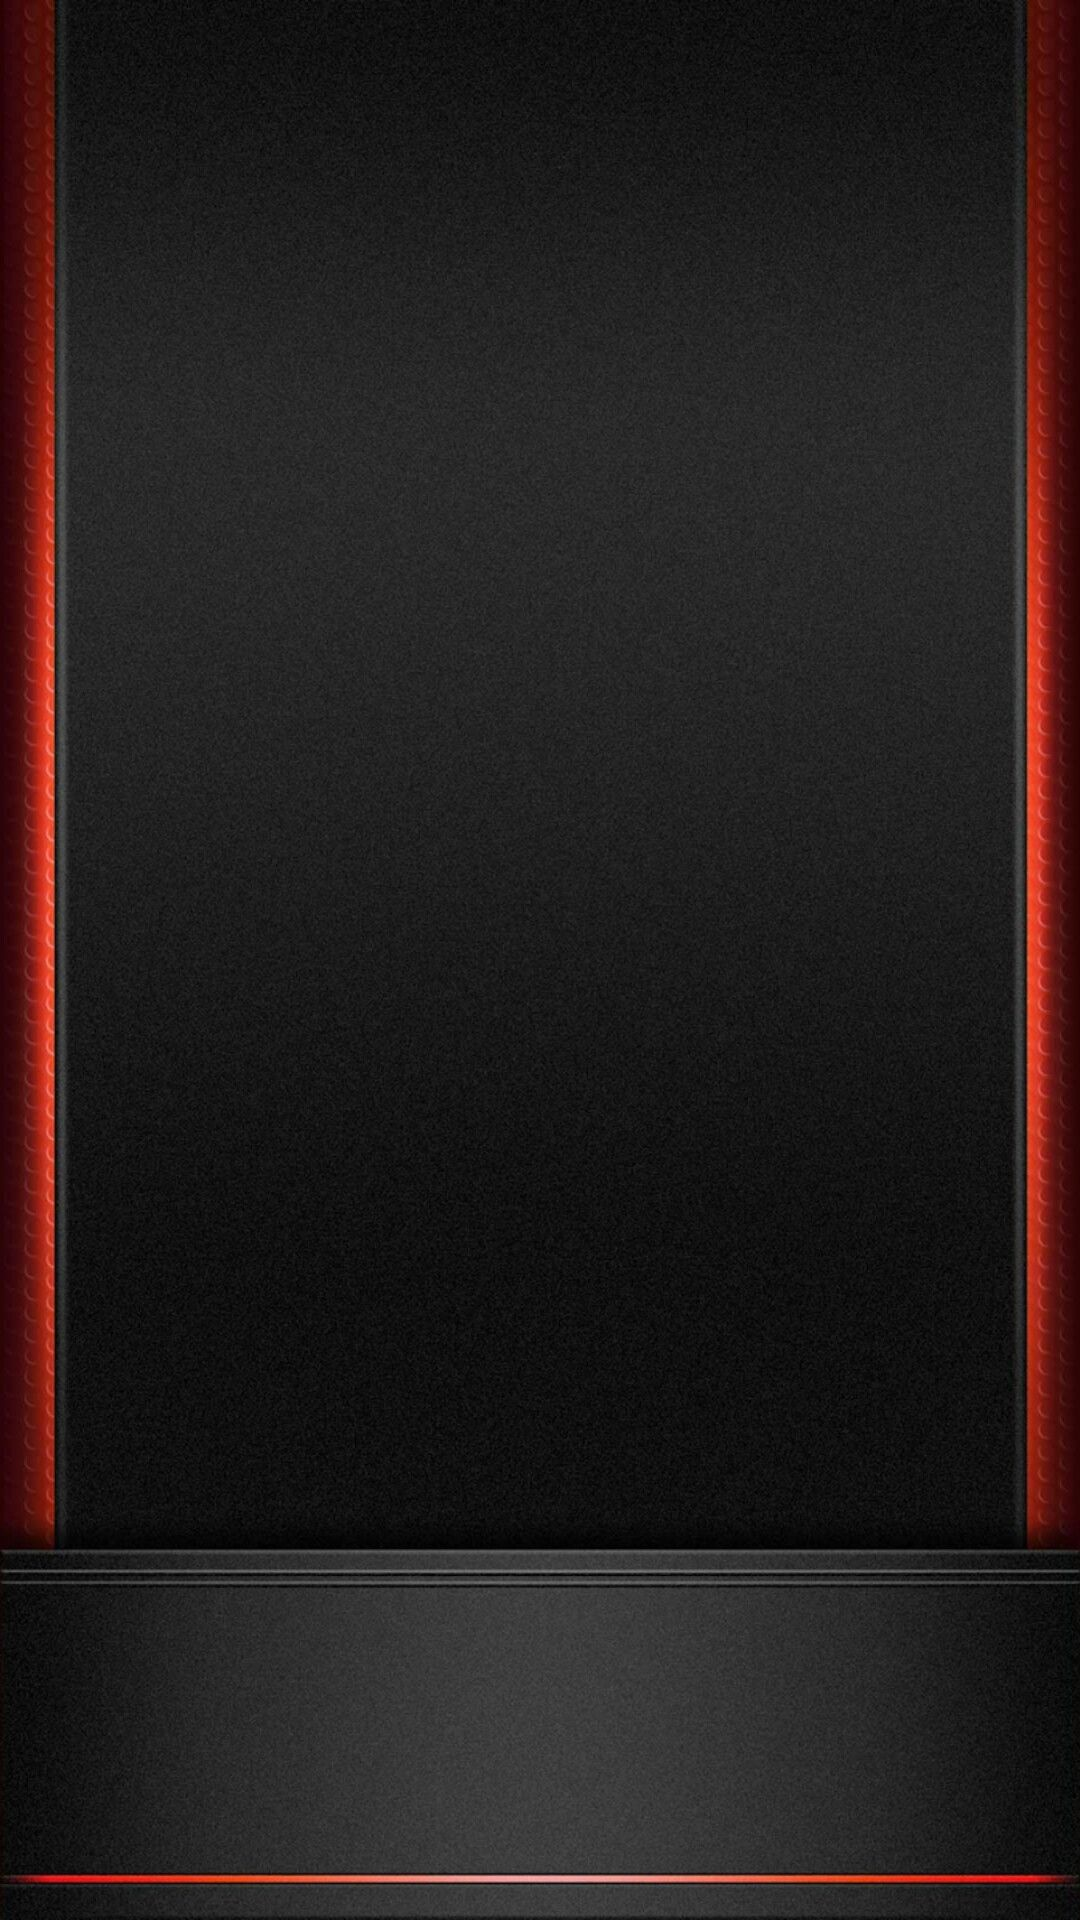 Red Phone Wallpapers Top Free Red Phone Backgrounds